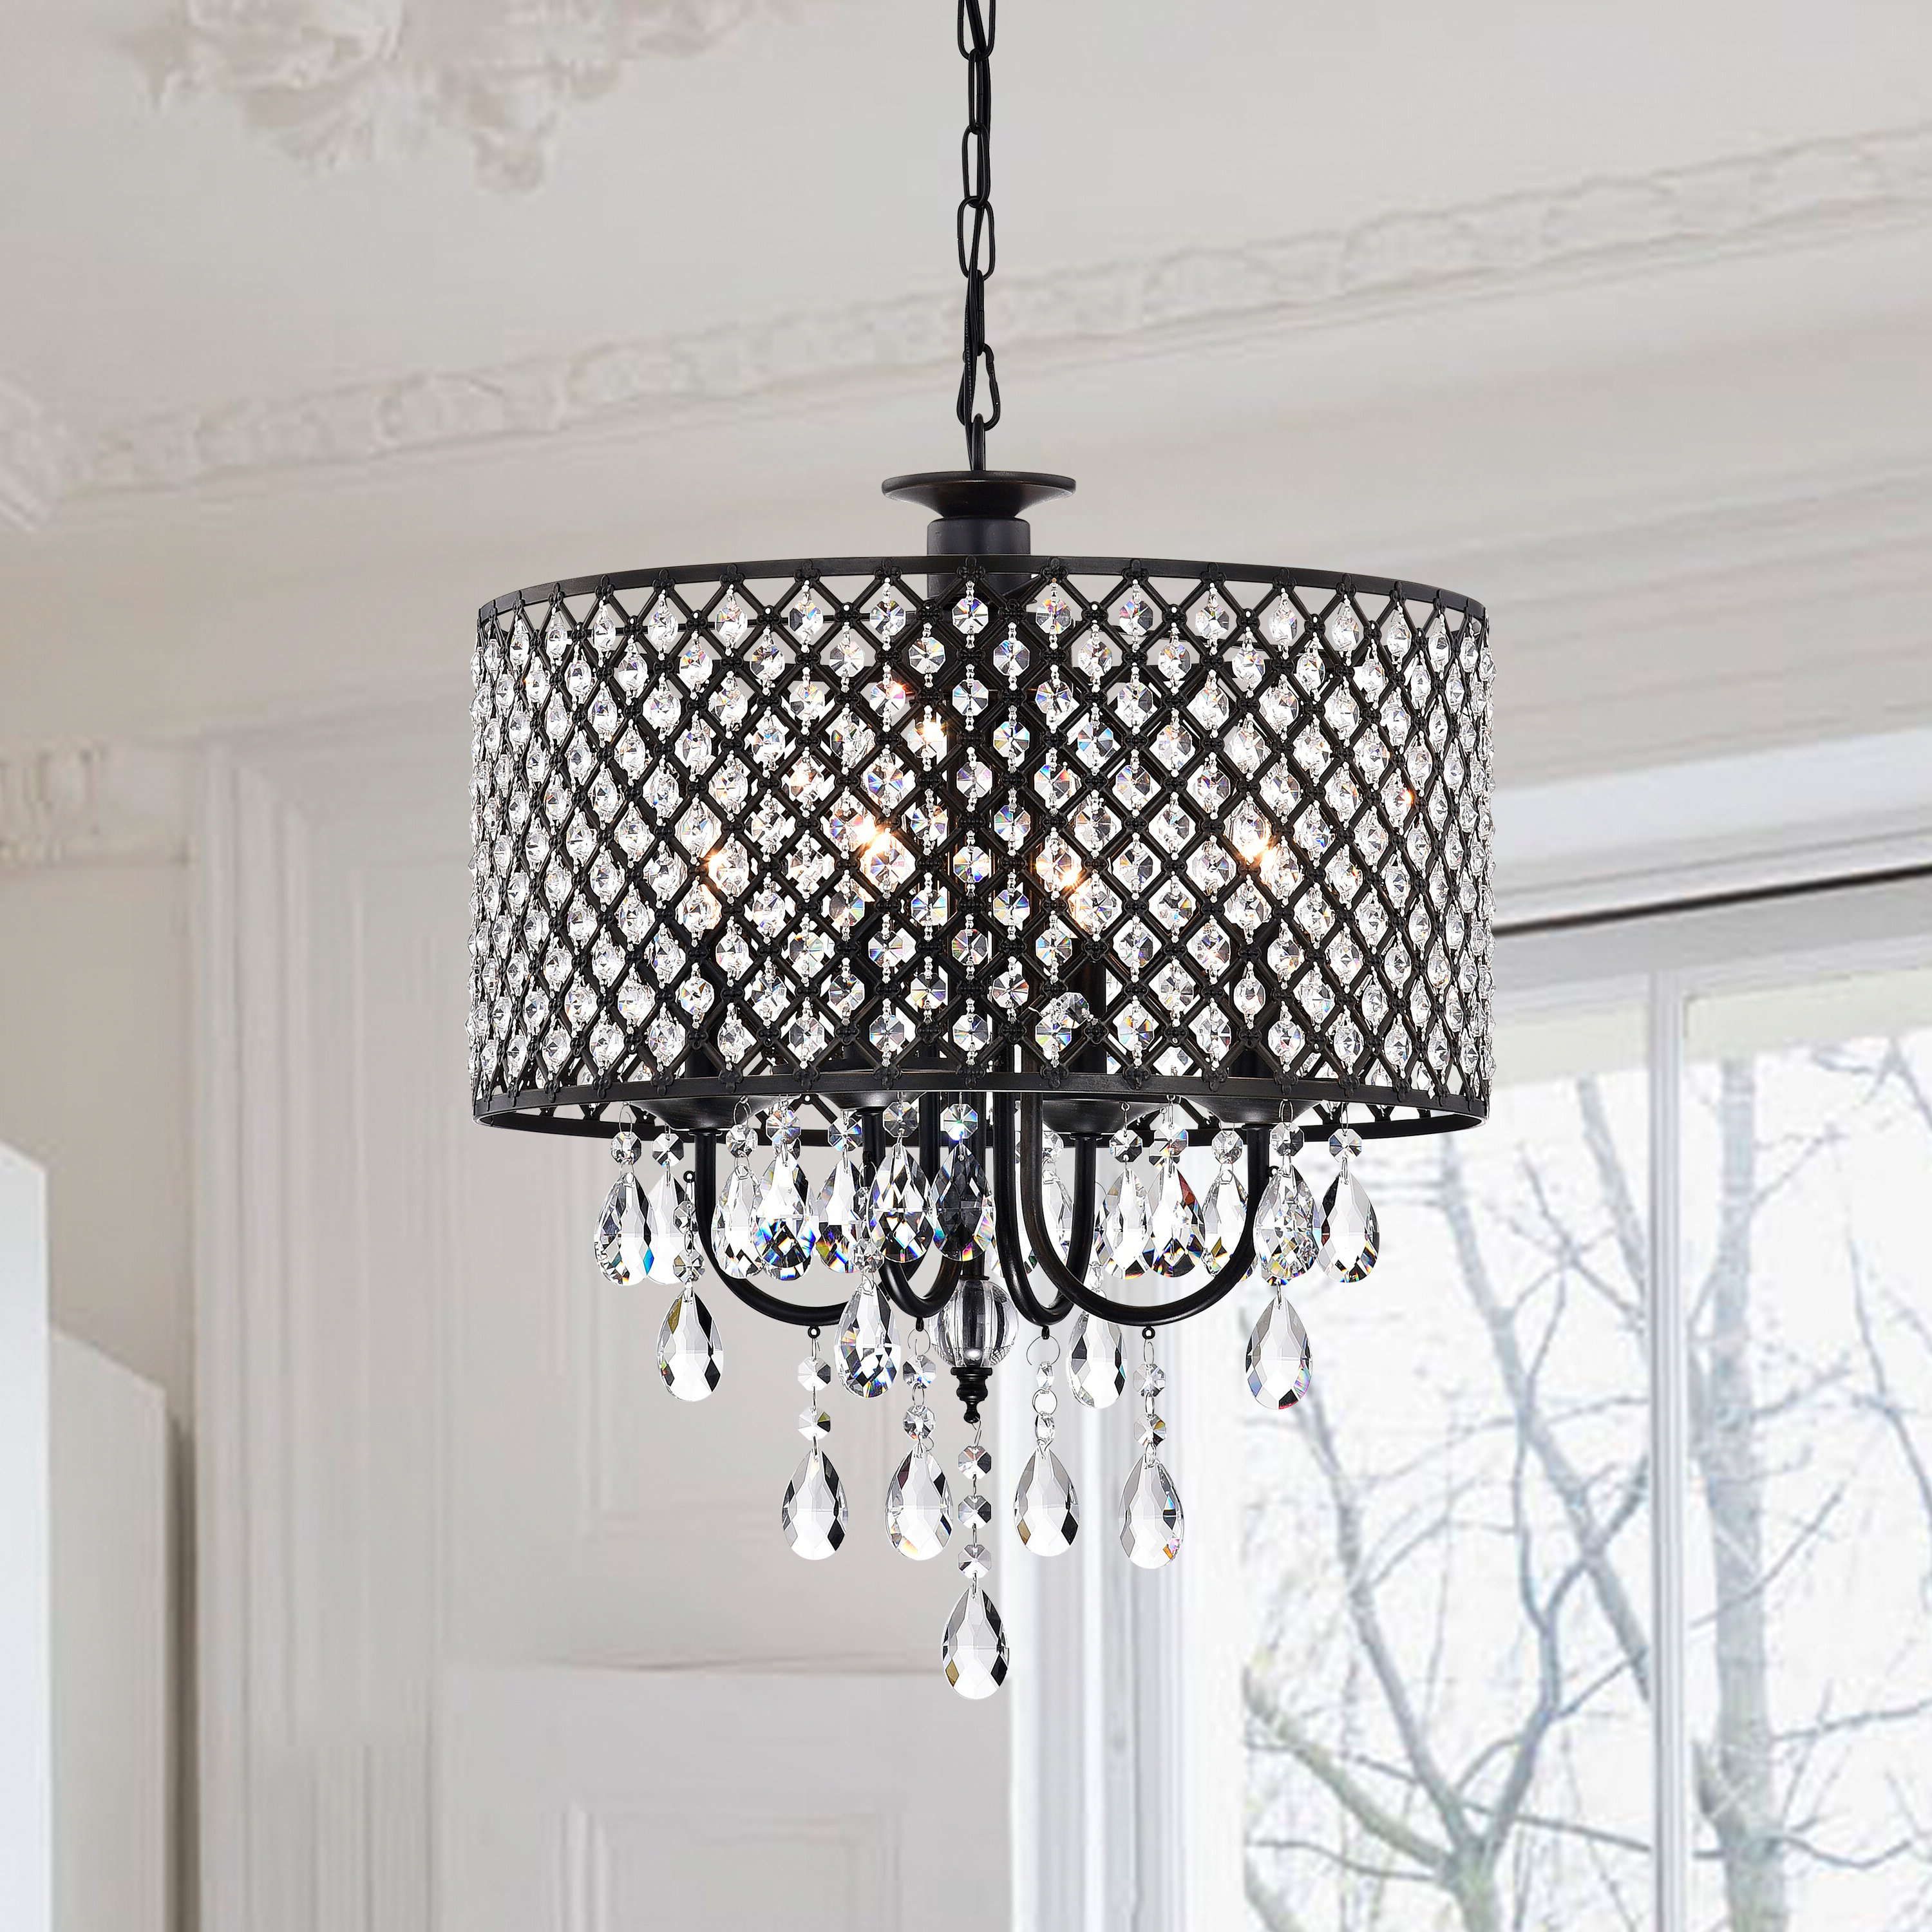 Well Liked Gisselle 4 Light Drum Chandelier Intended For Gisselle 4 Light Drum Chandeliers (View 24 of 25)